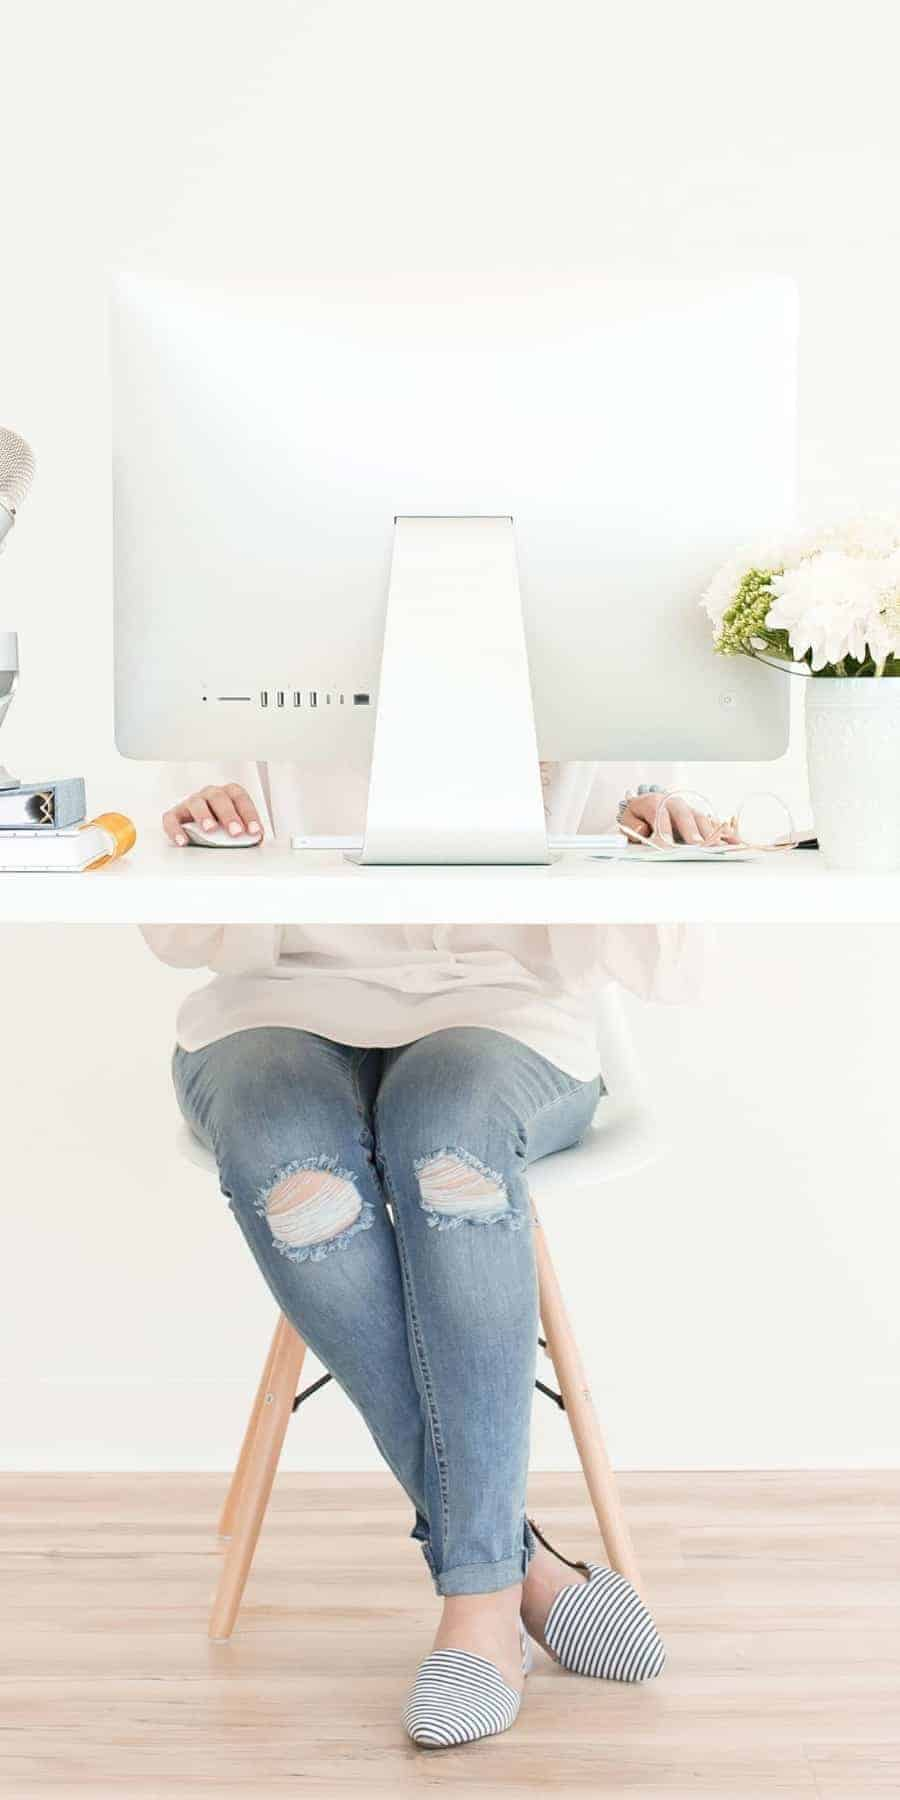 An image of a woman in jeans sitting at a desk in front of a white Mac monitor which is hiding her upper body and flowers on the desk and she is sitting with ankles crossed on a wooden chair on a hard wood floor